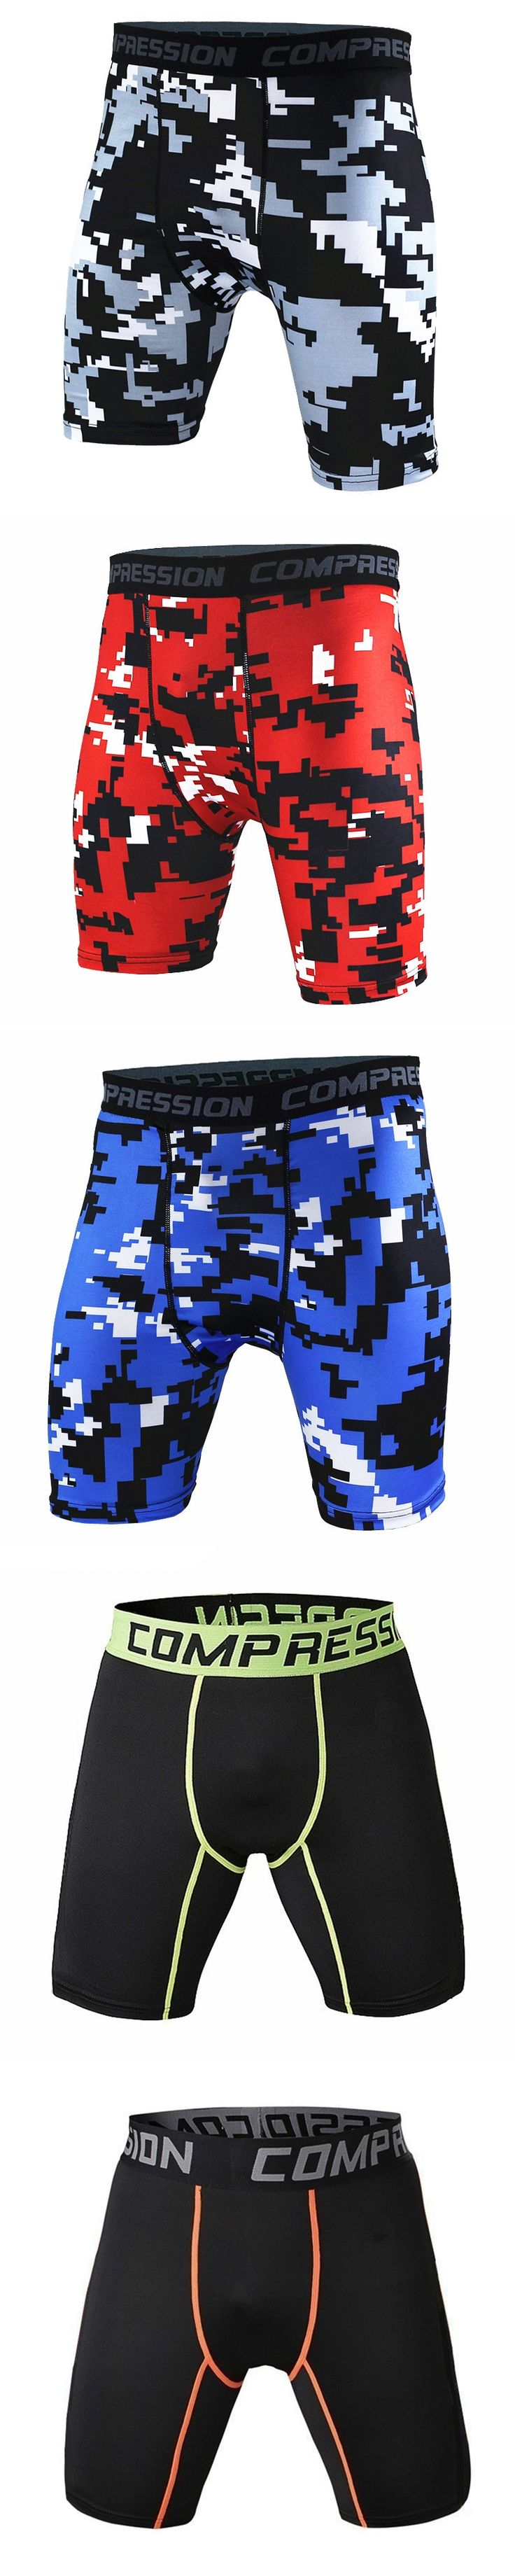 New Running Sport Mens Basketball Tight Compression Shorts Gym Fitness Clothing Training Wicking Short Pants Homme Men